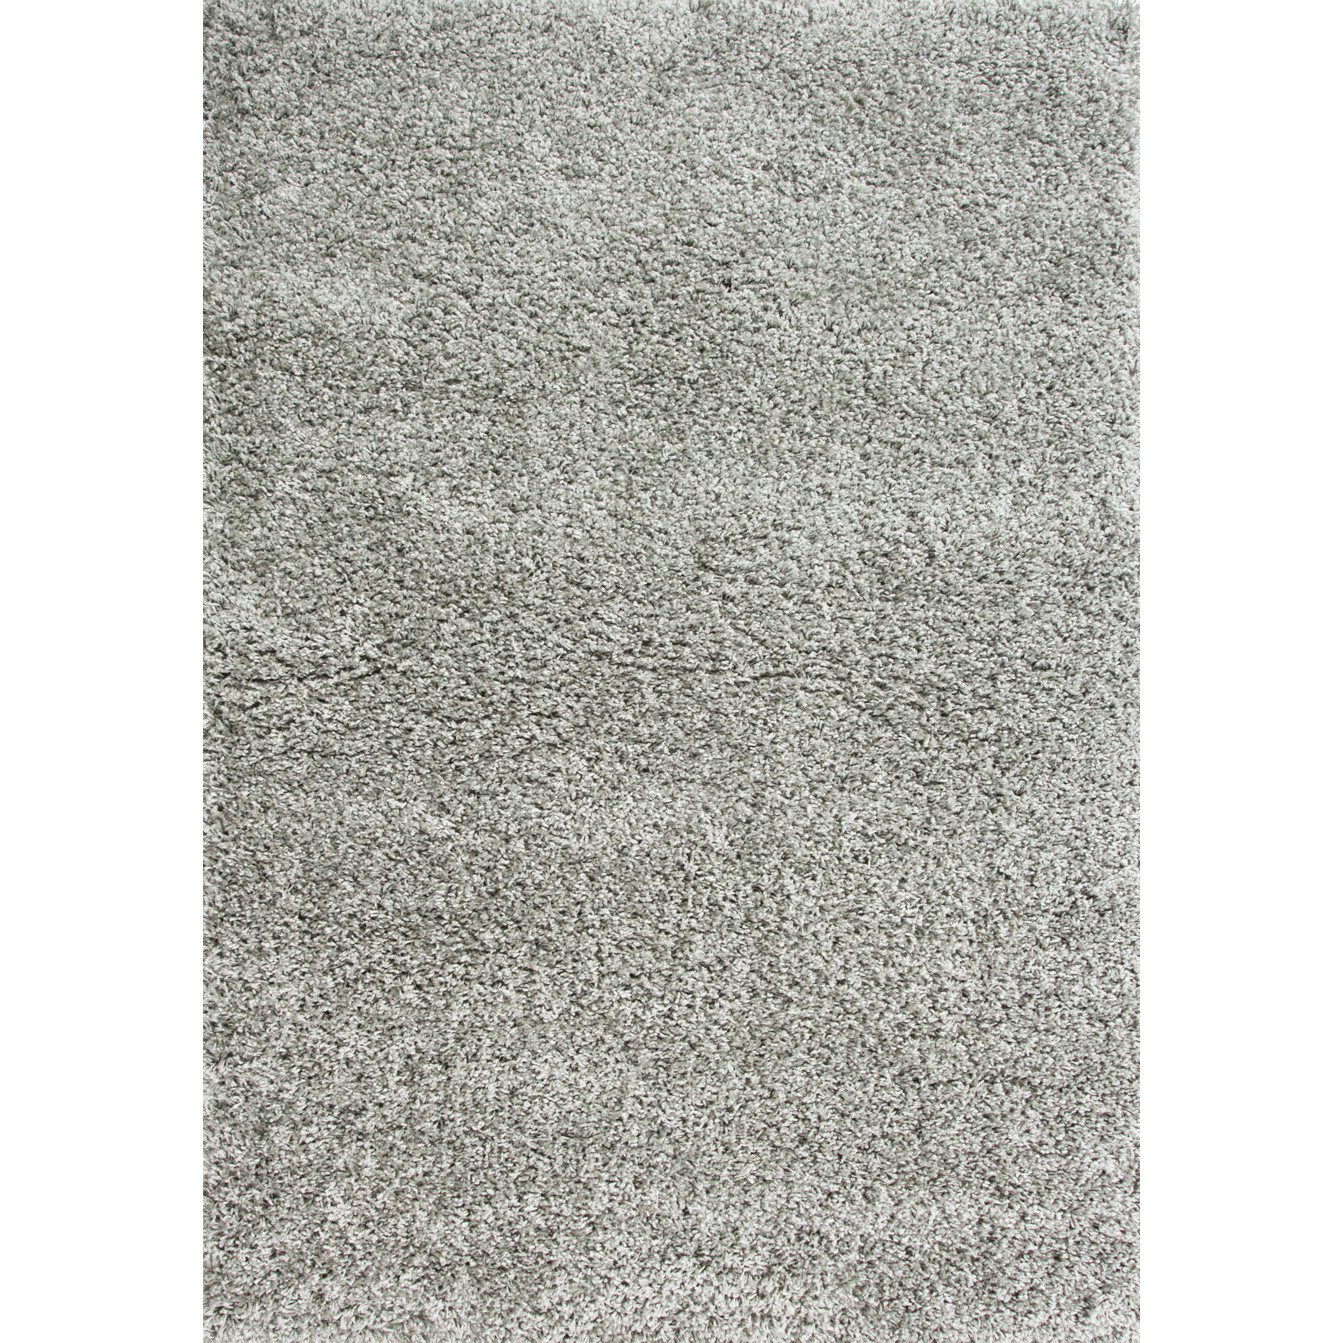 Soft Silver Grey Non Shed Shaggy Rug